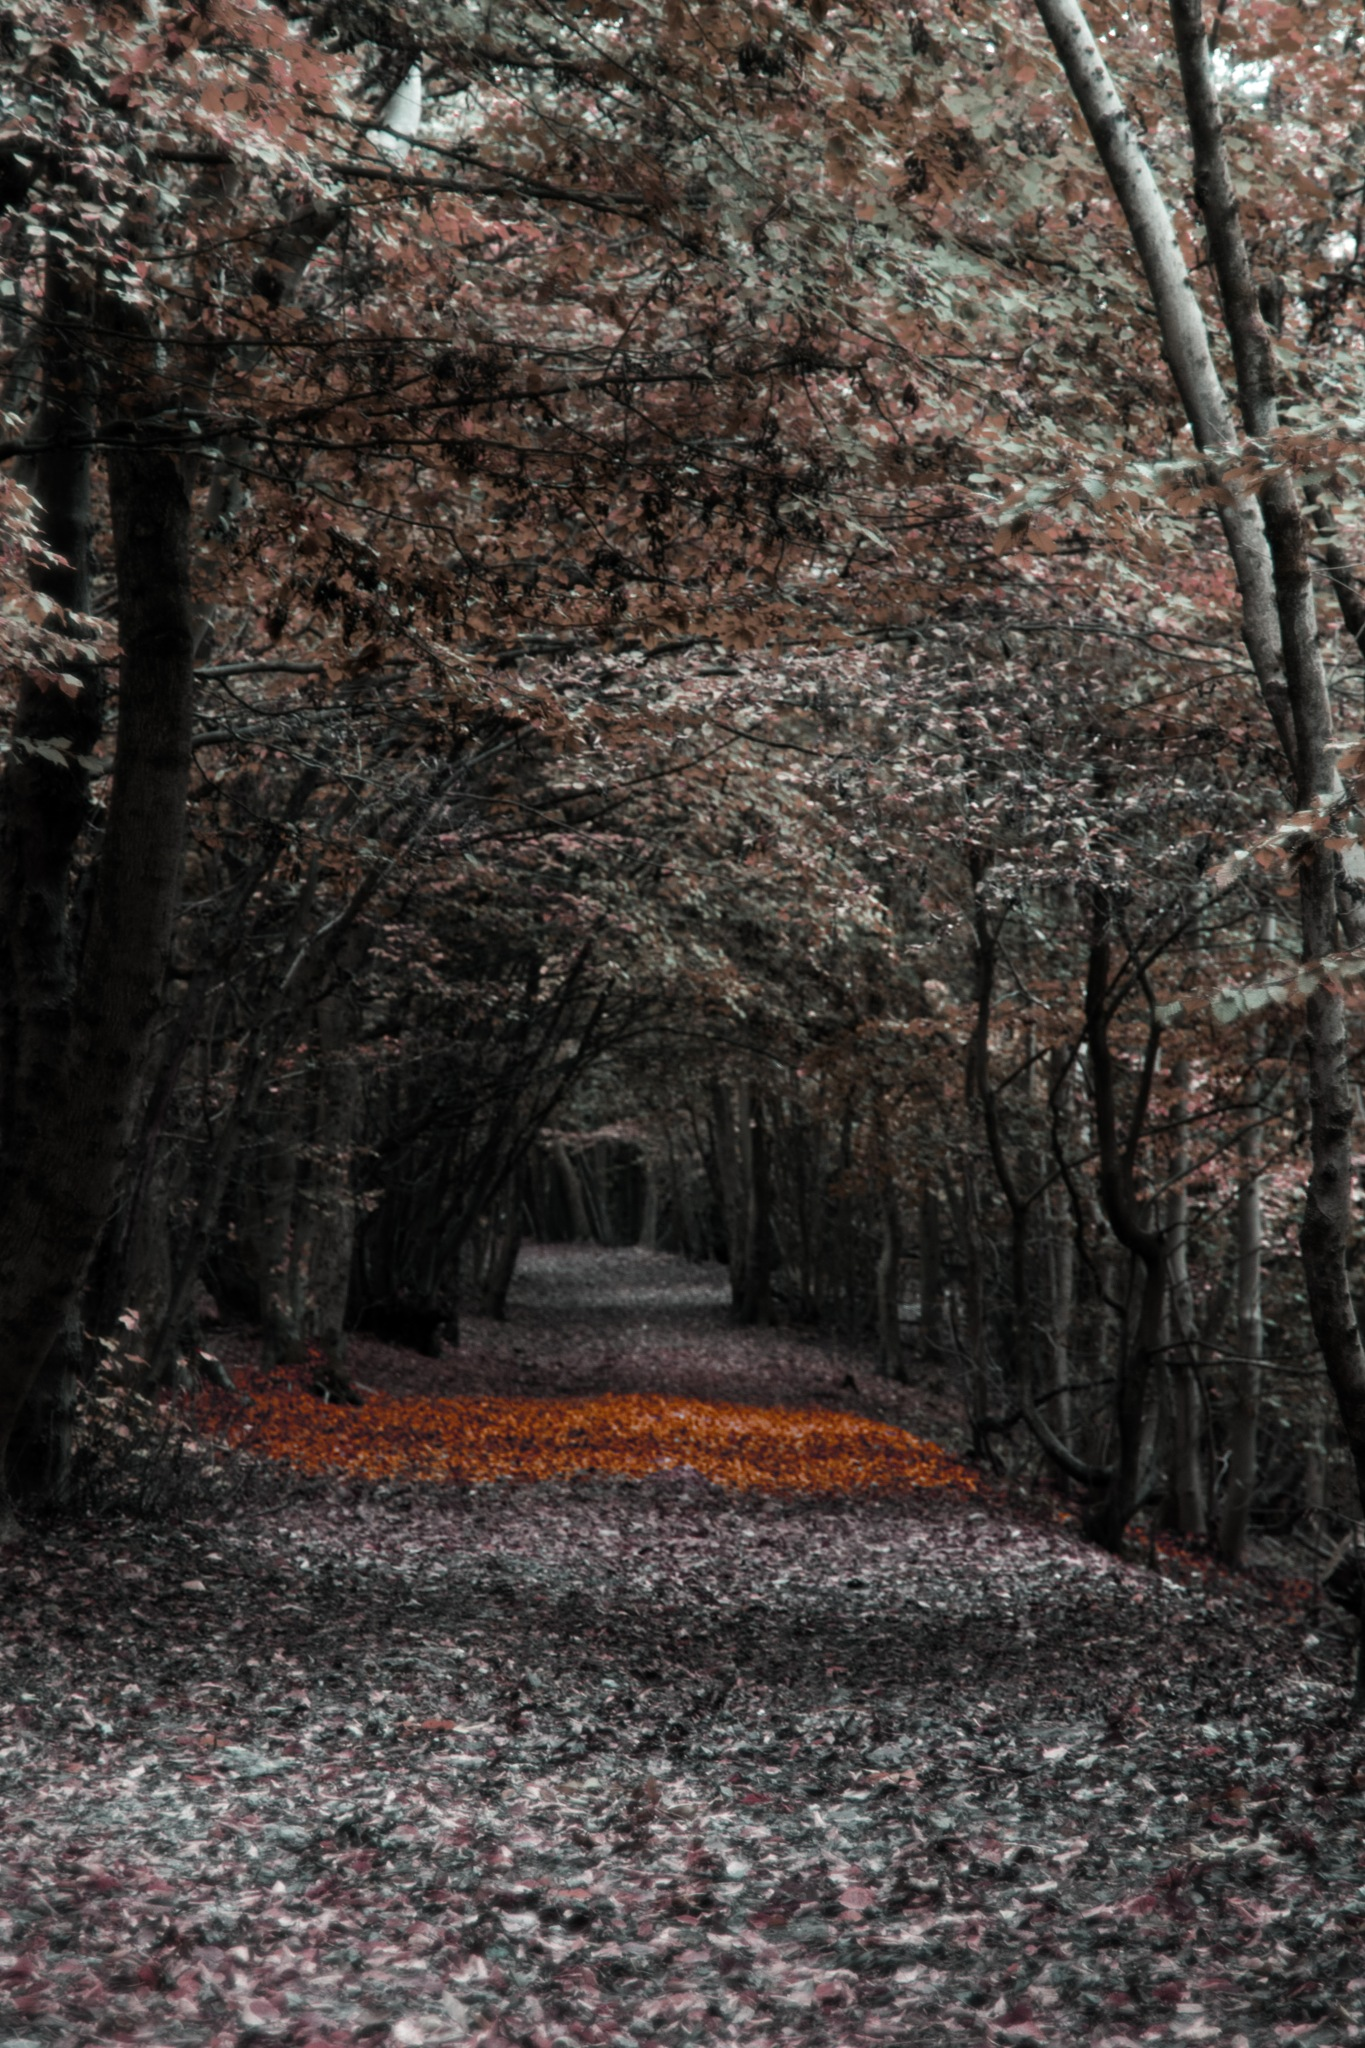 The Path to Autumn by Reece Johnson